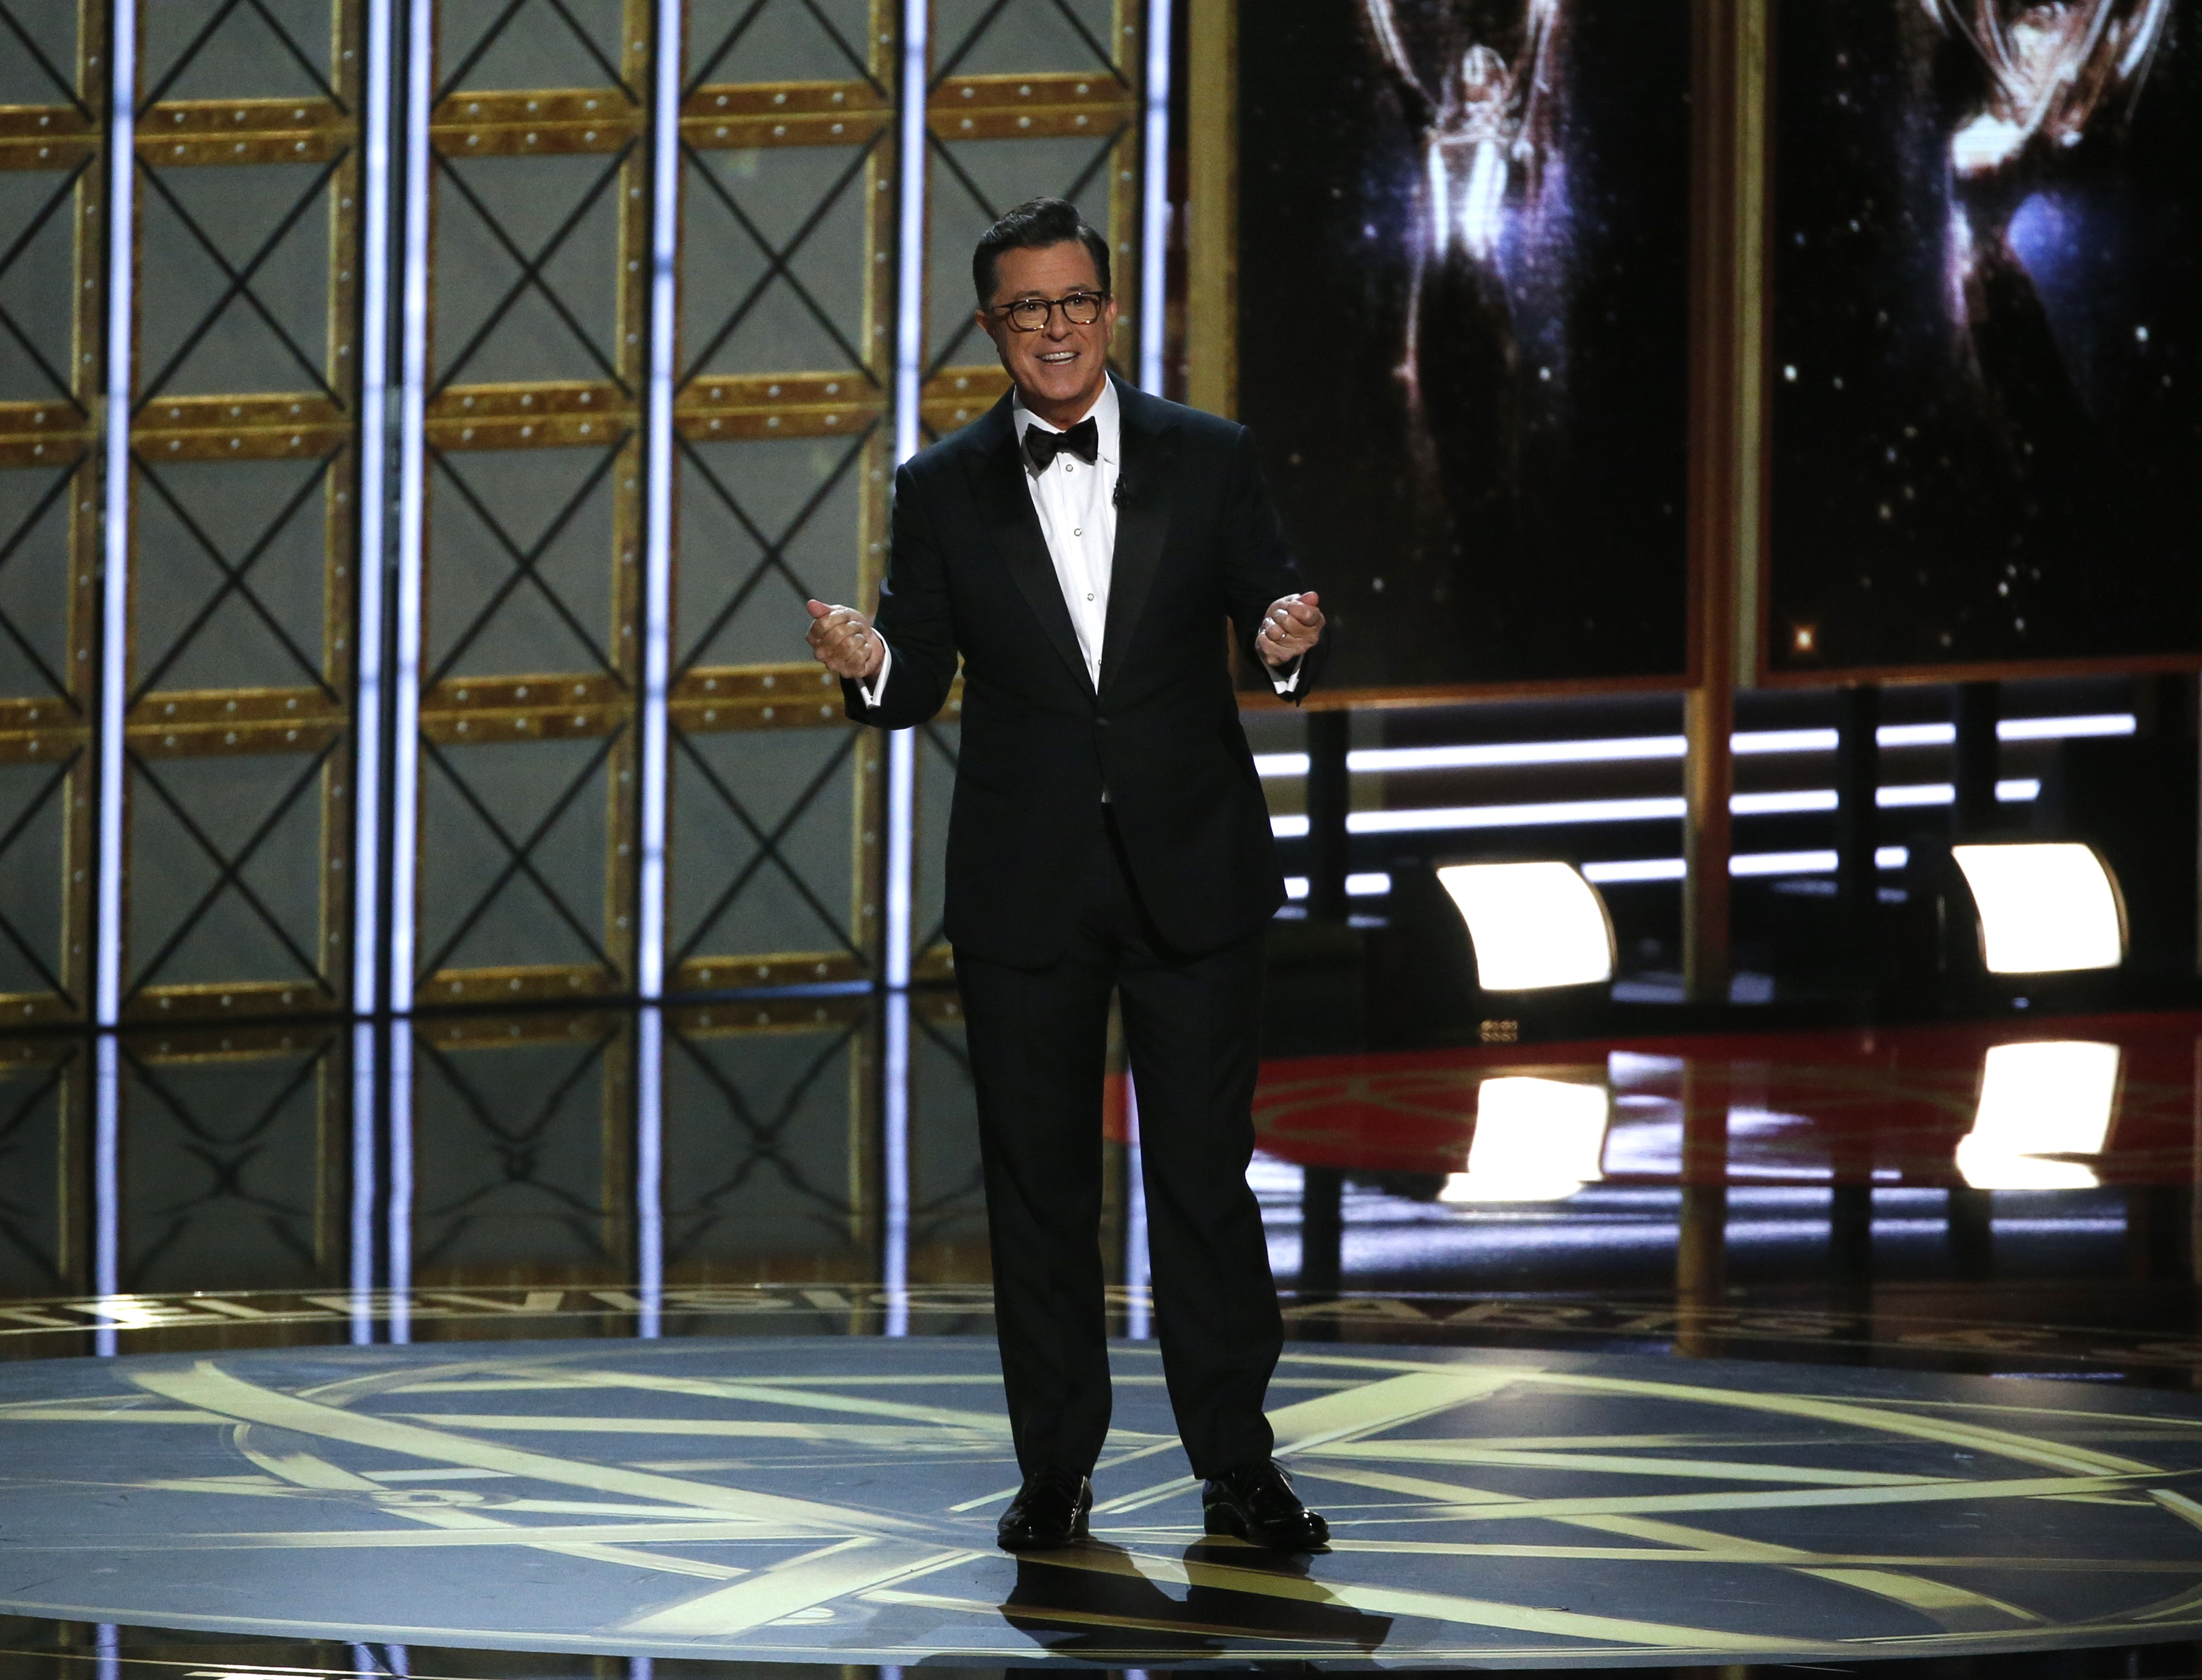 69th Primetime Emmy Awards – Show – Los Angeles, California, U.S., 17/09/2017 - Host Stephen Colbert speaks as he opens the show. REUTERS/Mario Anzuoni - HP1ED9I01BBX8